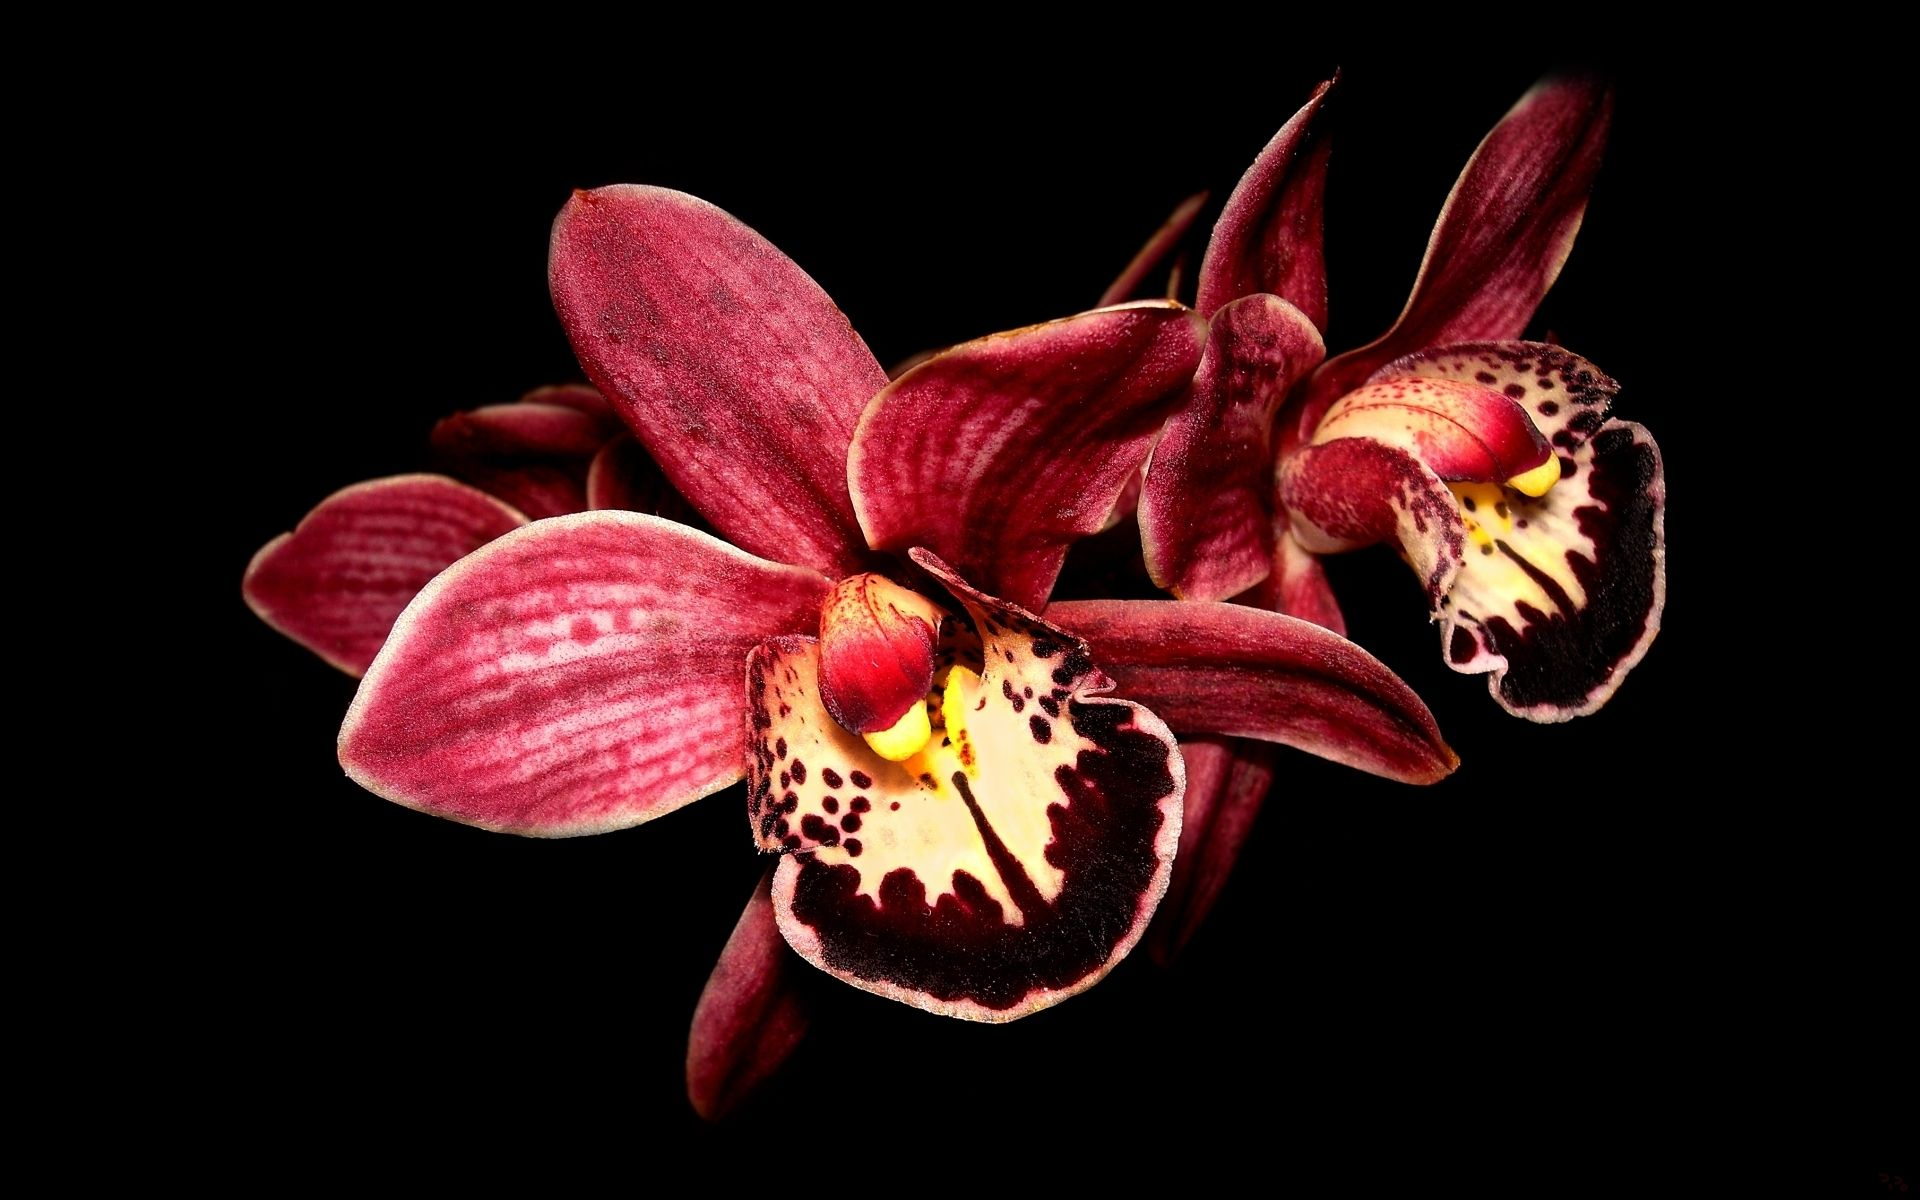 Download Wallpaper Orchid Wallpaper Red Orchids Orchid Images